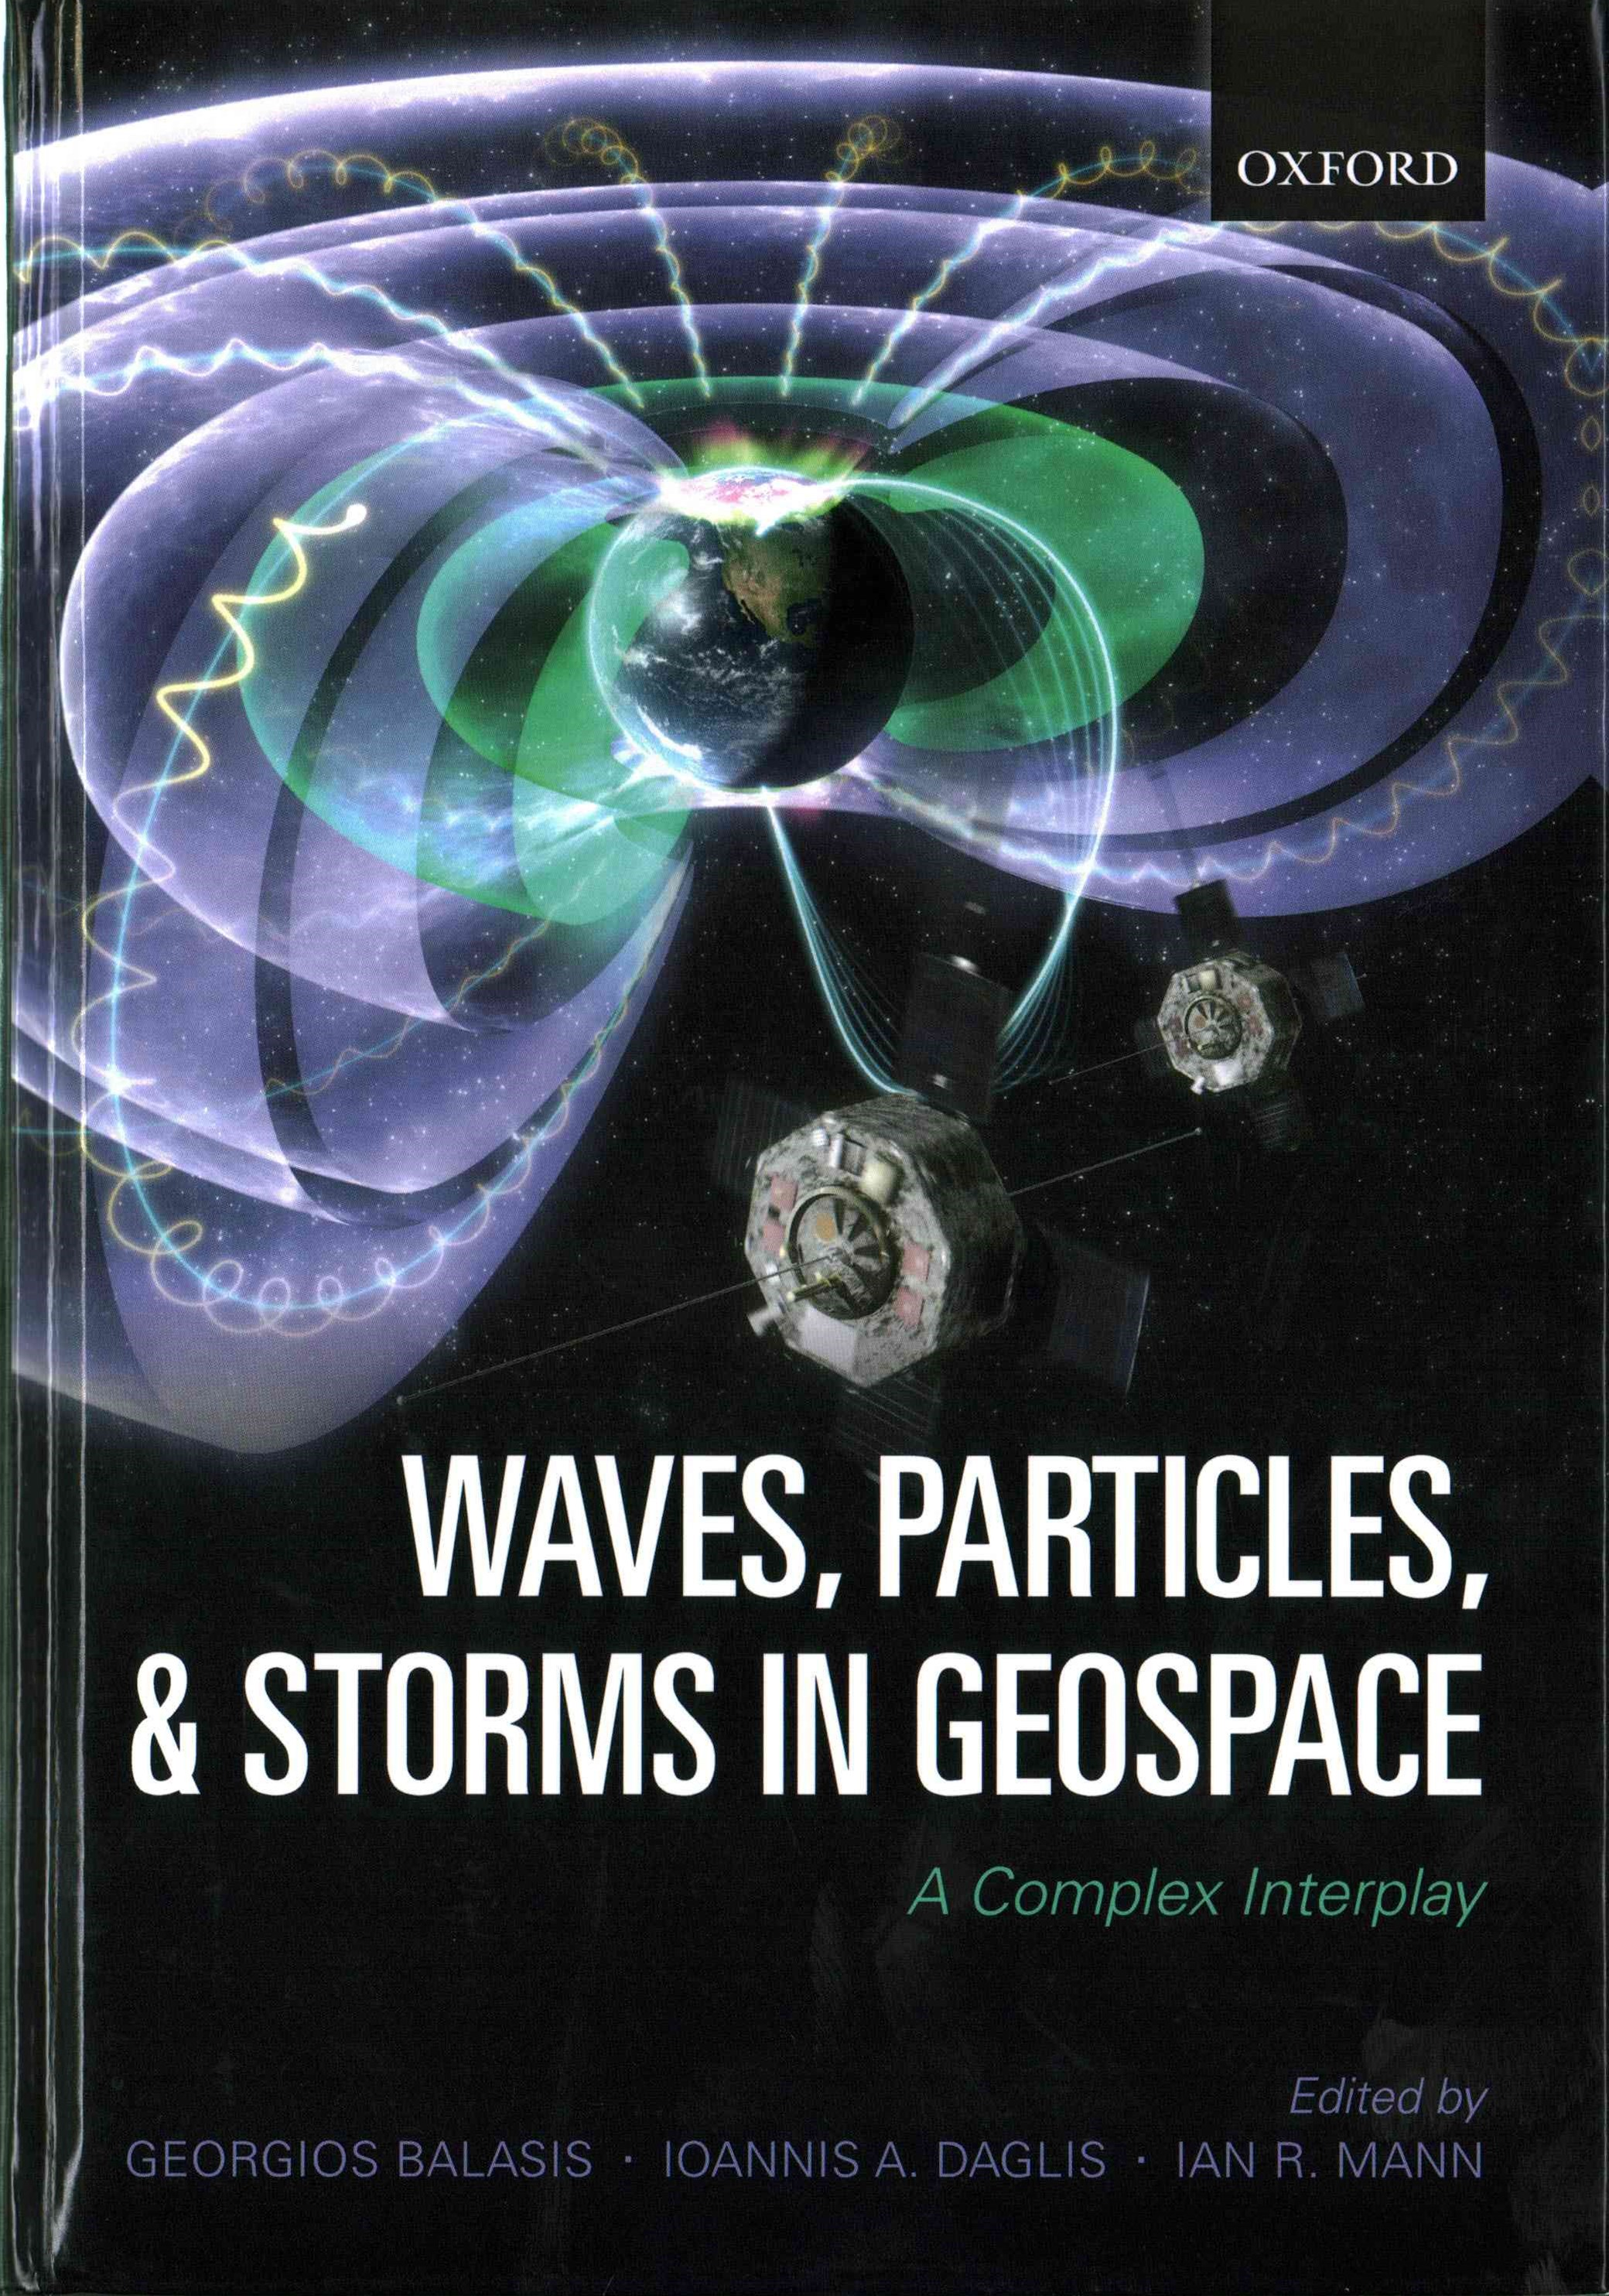 Waves, Particles, and Storms in Geospace